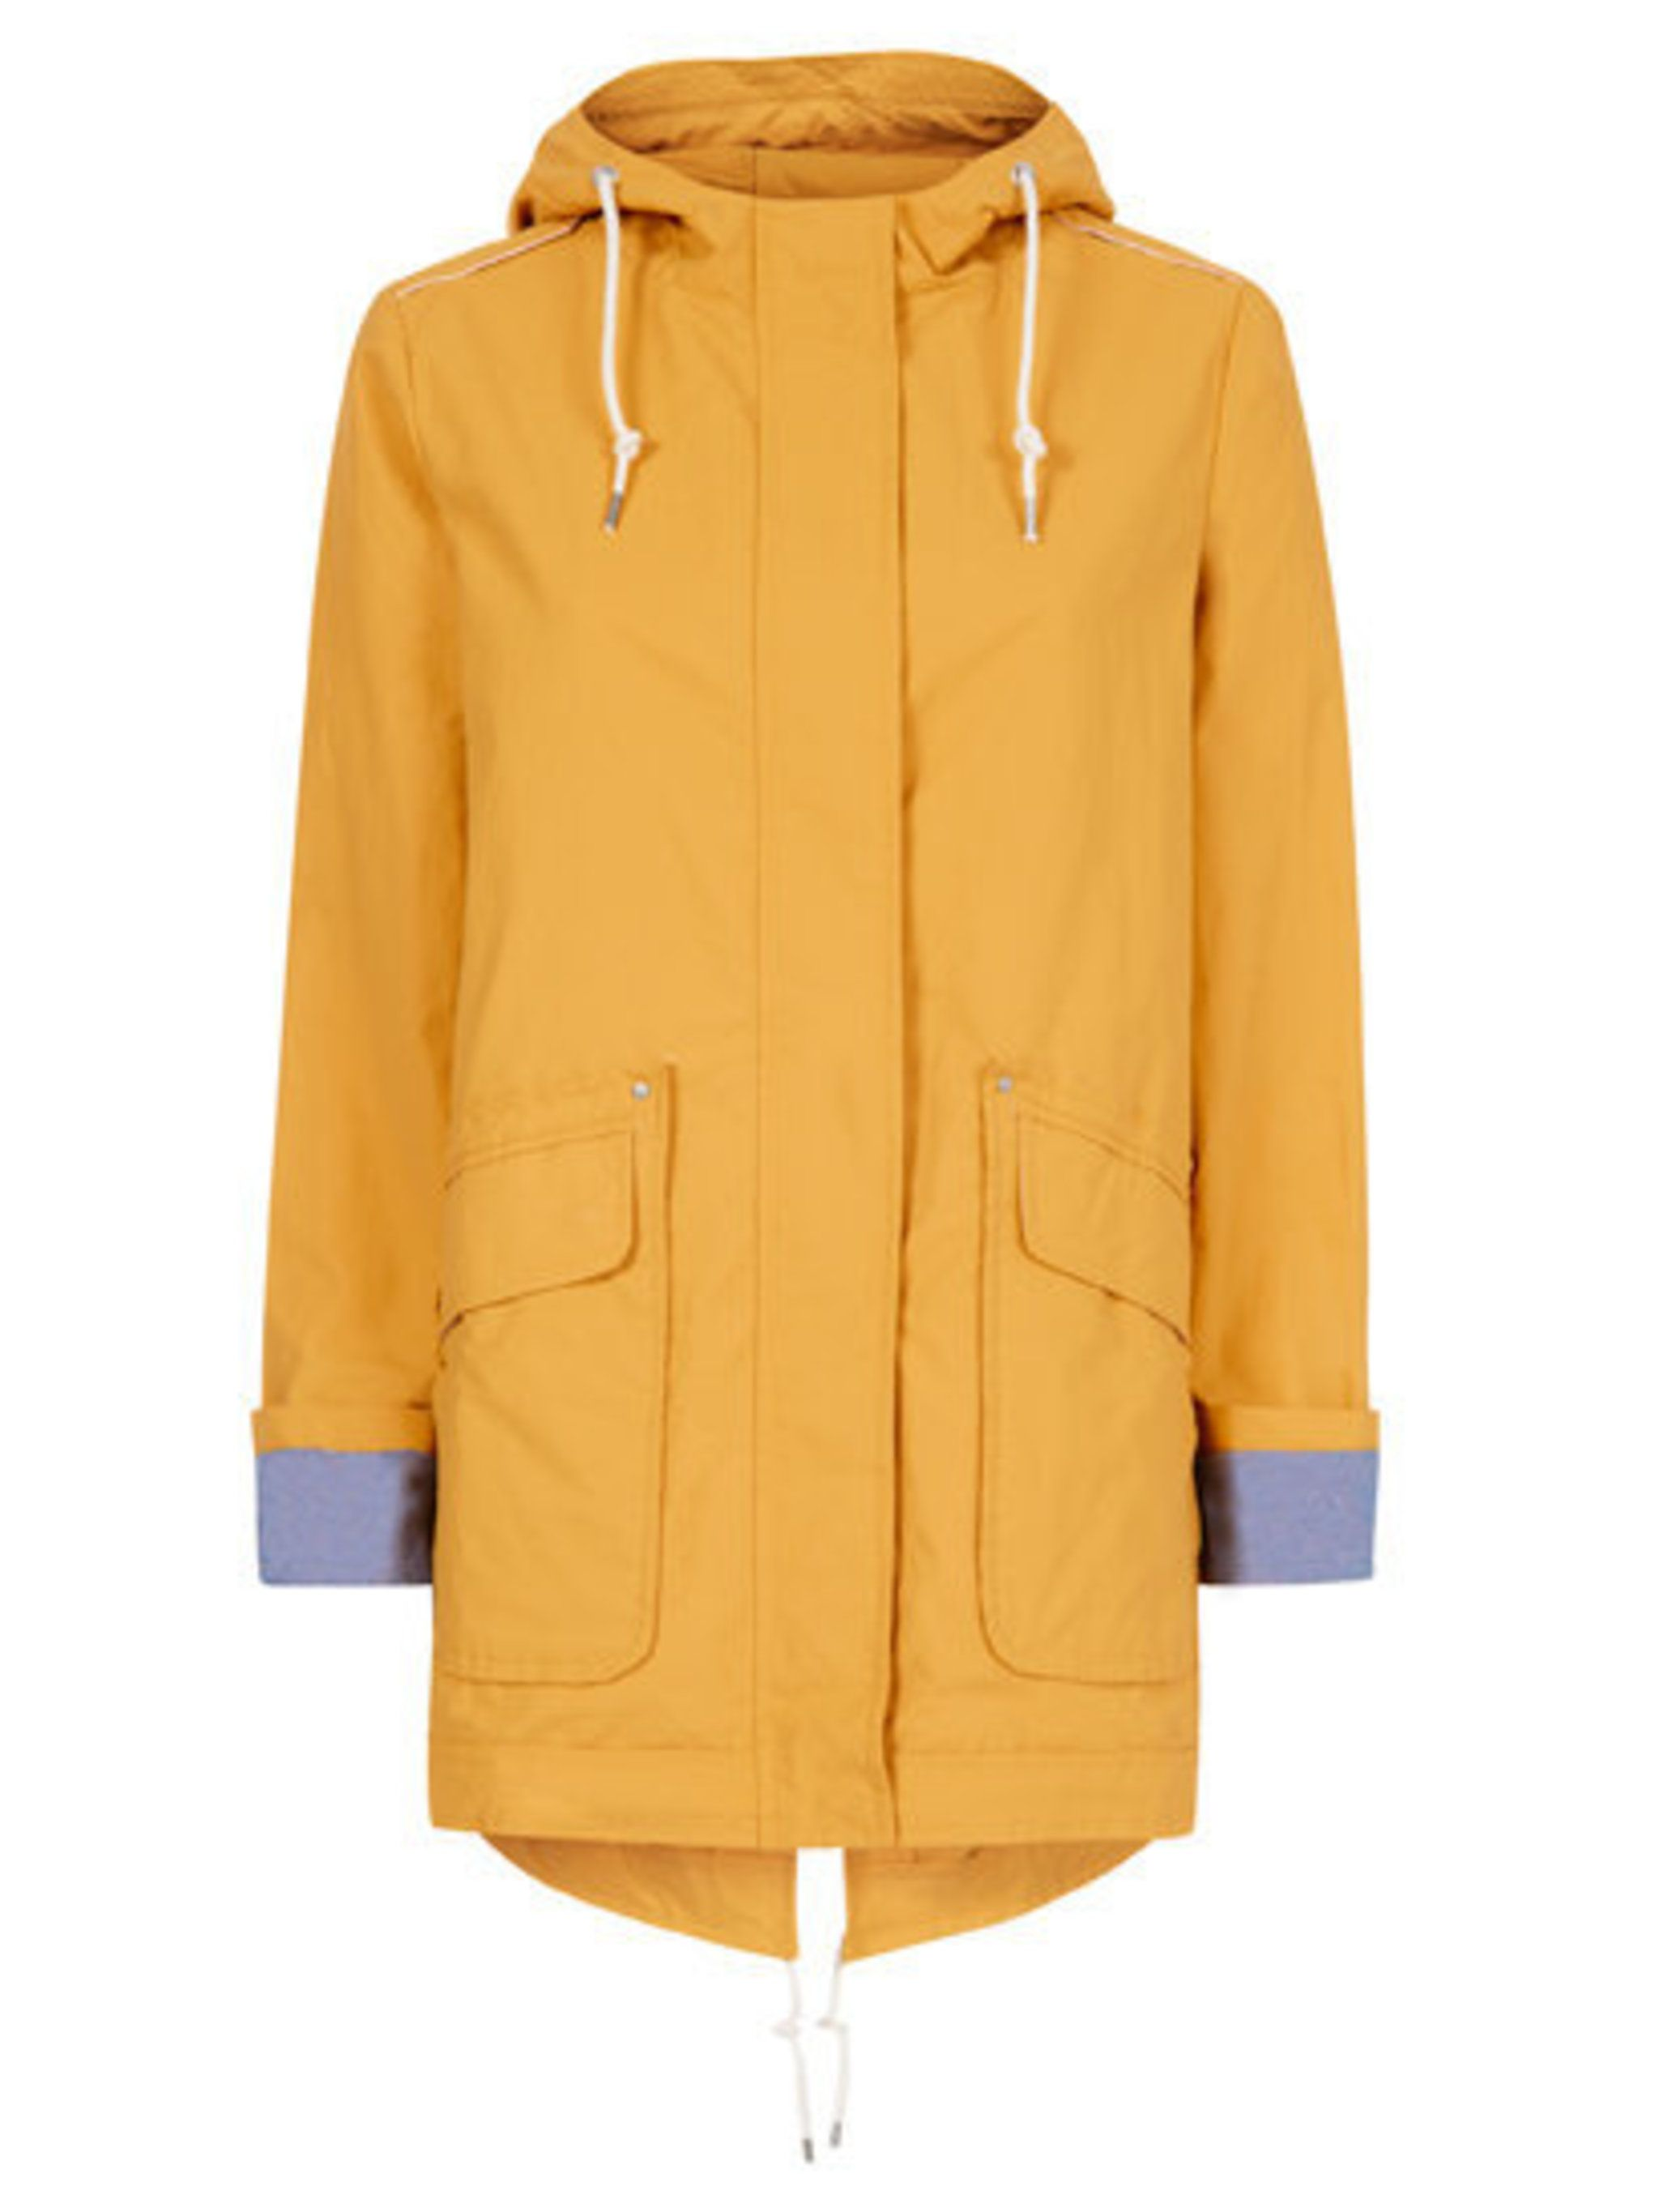 "<p>A parka is definitely in need. This <em>Clemence</em> style, £220 from <a href=""http://www.parkalondon.com/item/clemence_36.html"">Parka London</a>, is the perfect festival coat. Water-resistant and bright in colour, you'll stand out in the crowd… in a"